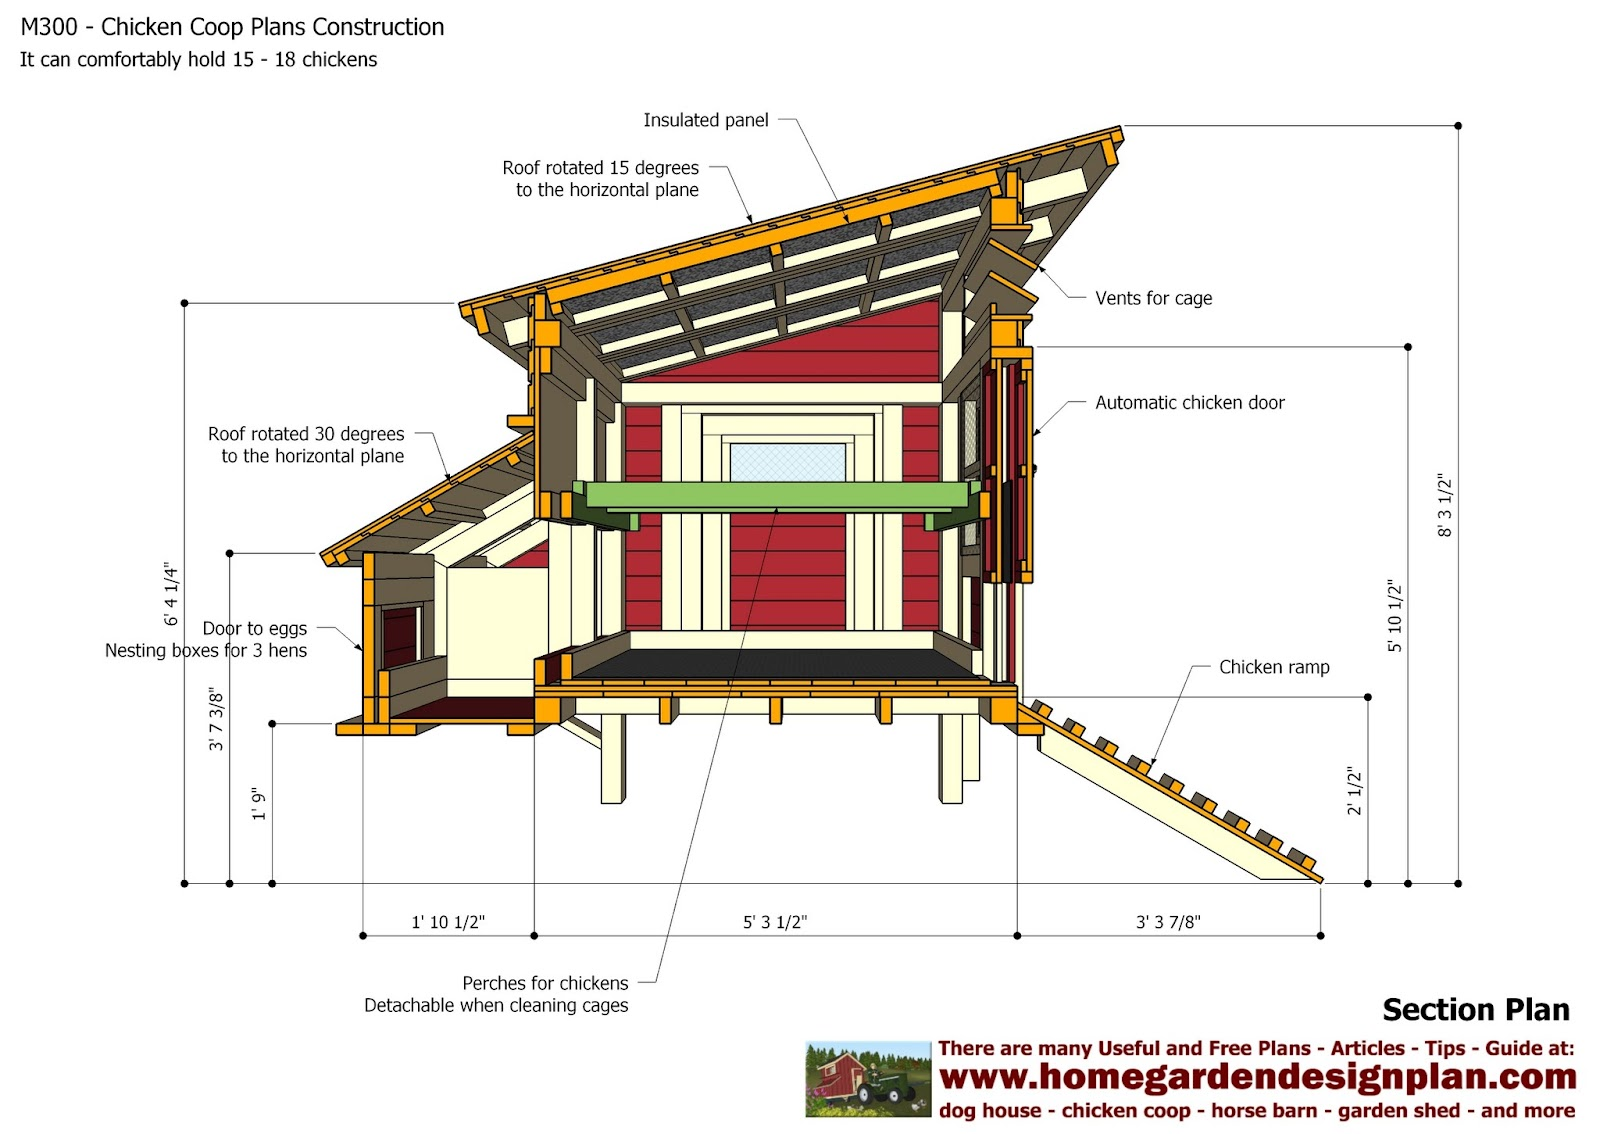 Dewa coop this is building a chicken coop pdf download for Free coop plans